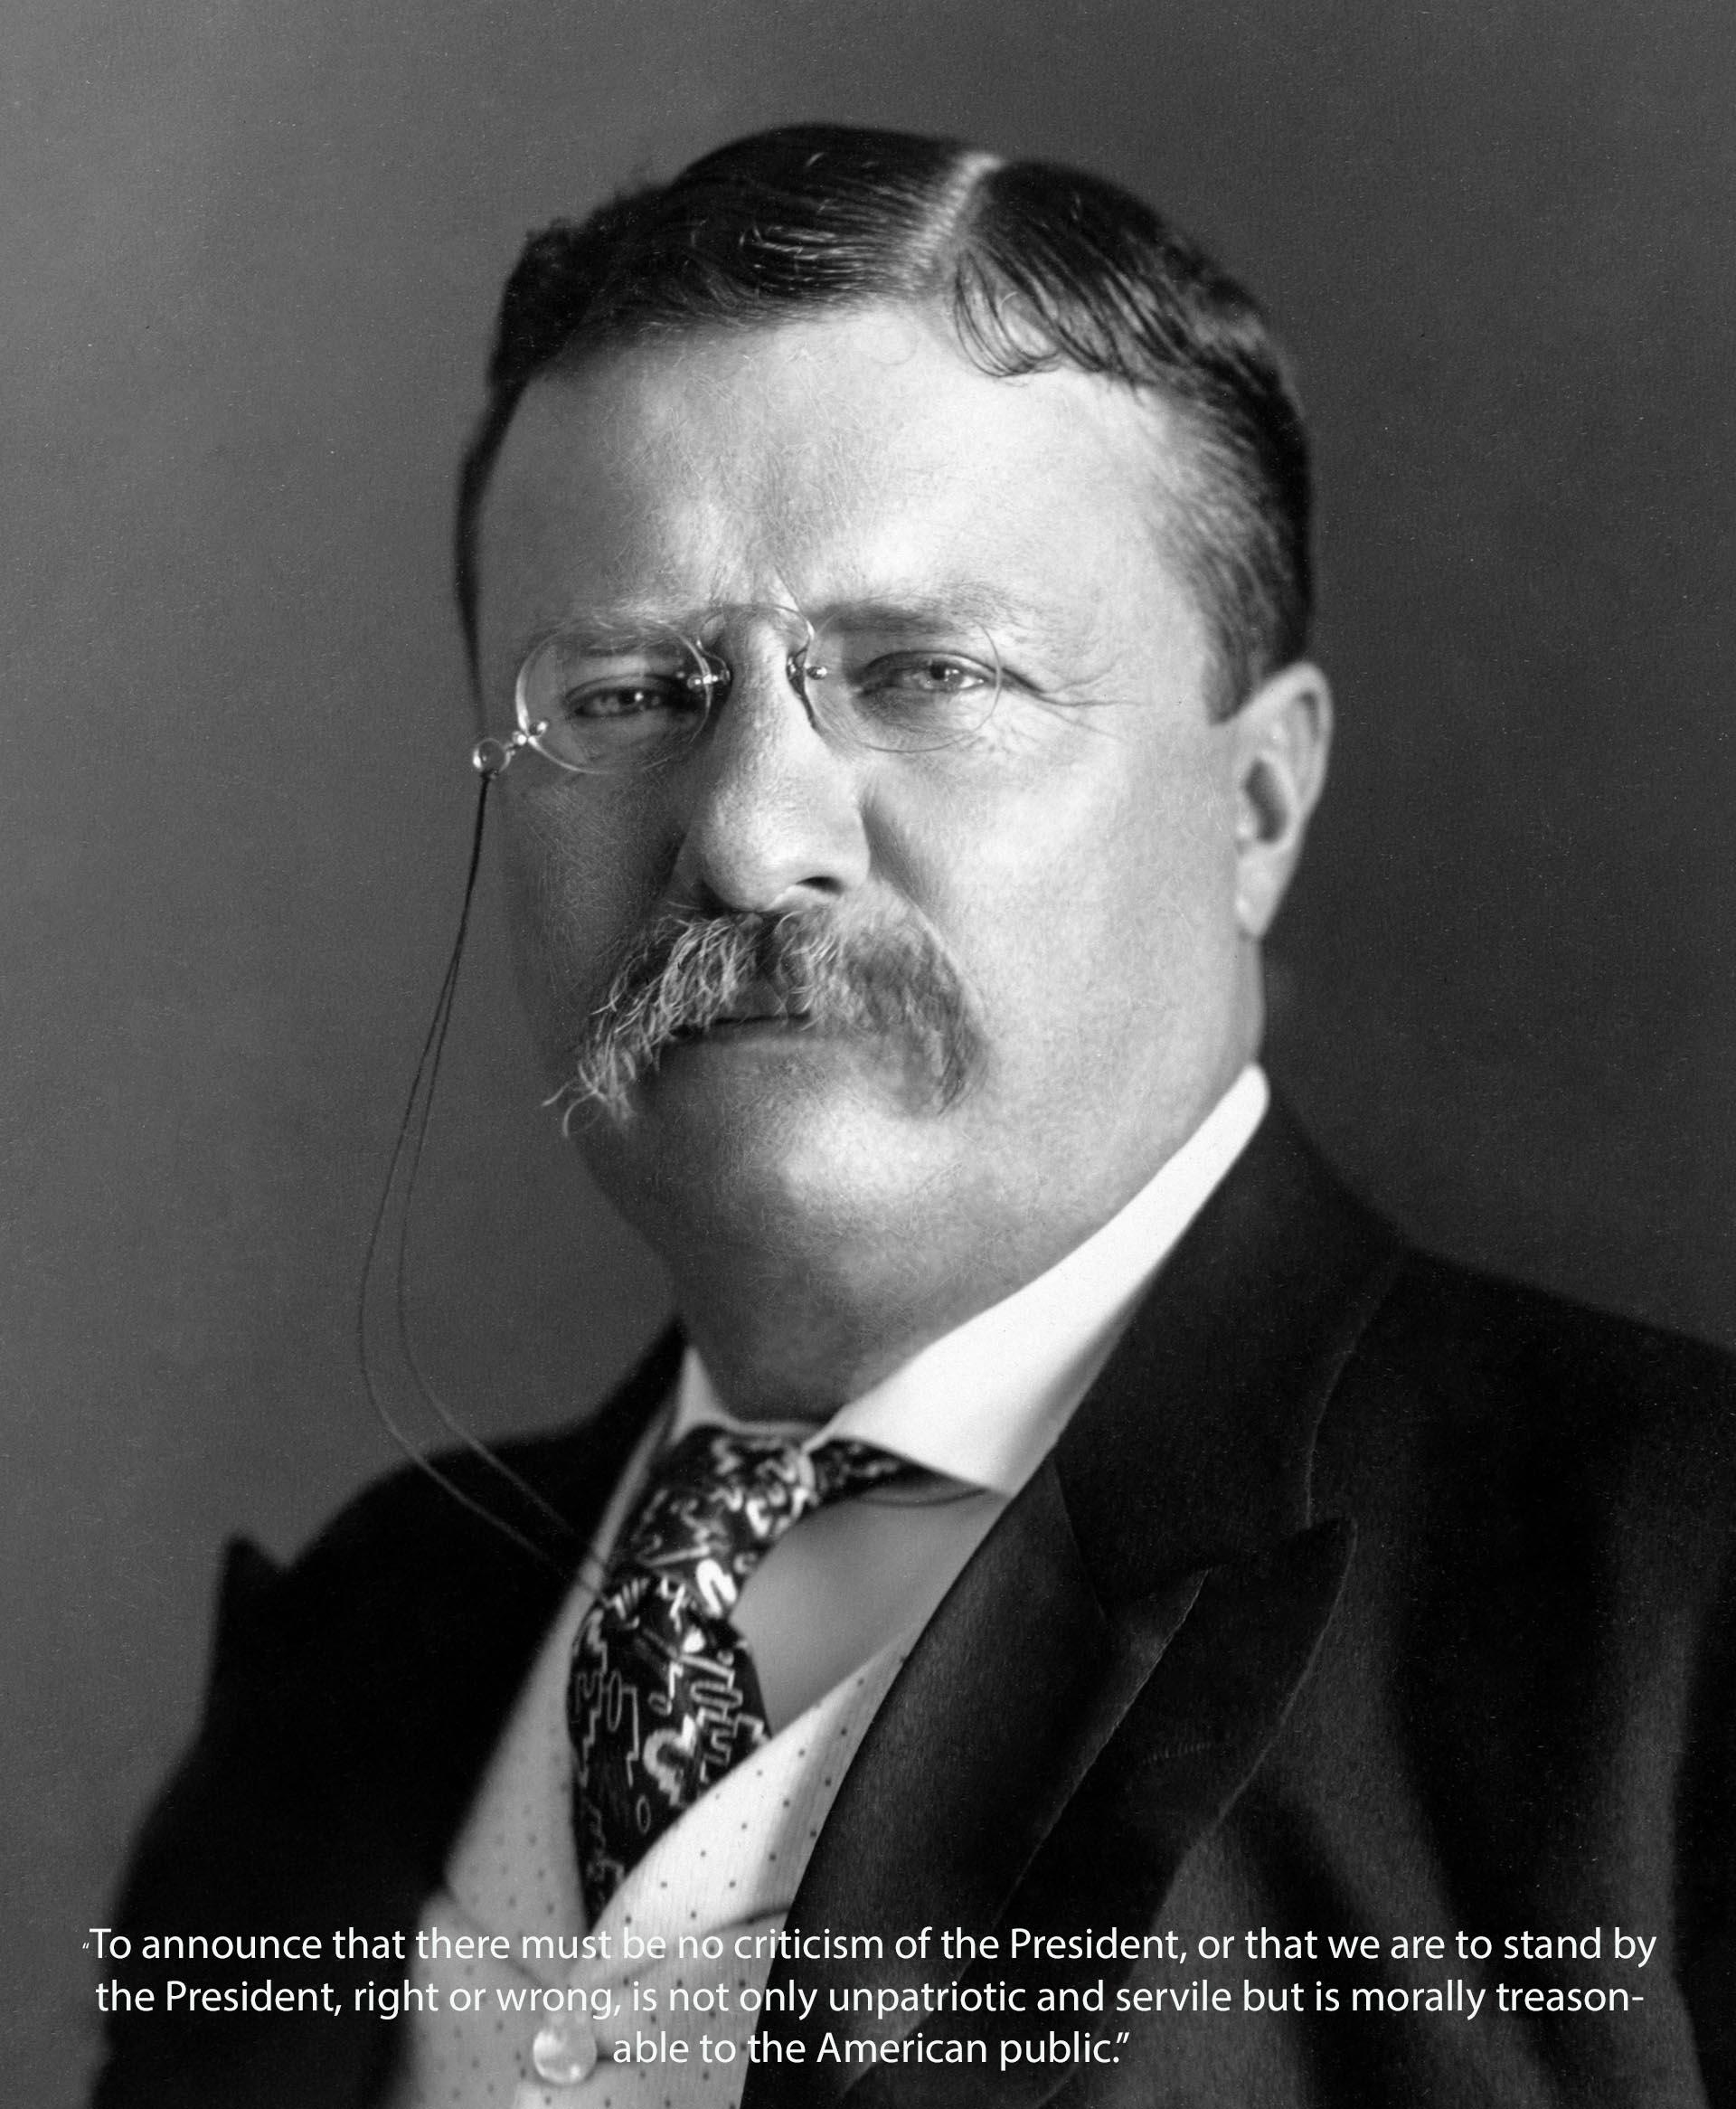 """To announce that there must be no criticism of the President, or that we are to stand by the President, right or wrong, is not only unpatriotic and servile but is morally treasonable to the American public."" ~ Theodore Roosevelt (1920×2332)"